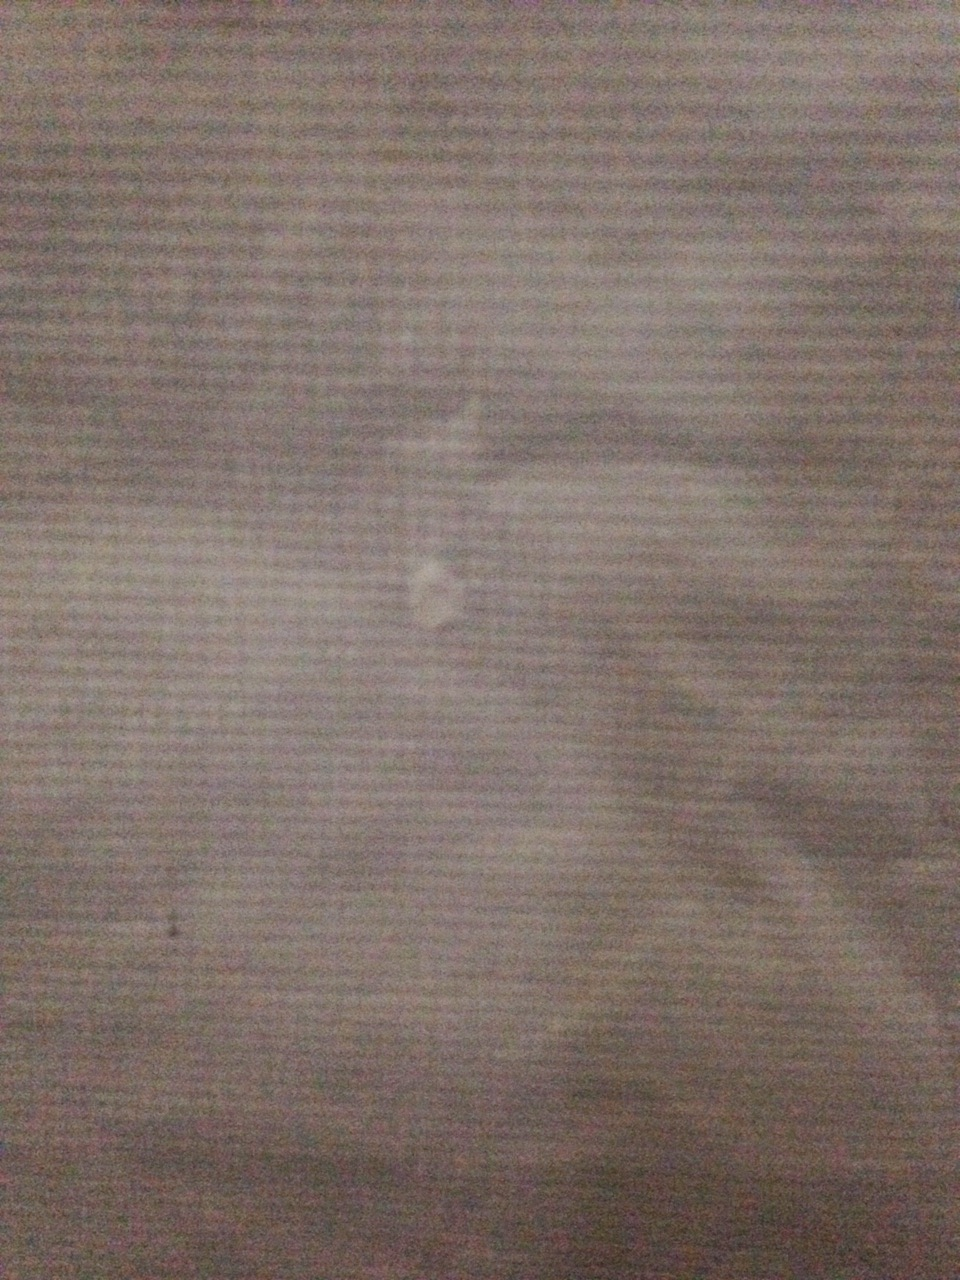 Tent fabric after pin hole repair